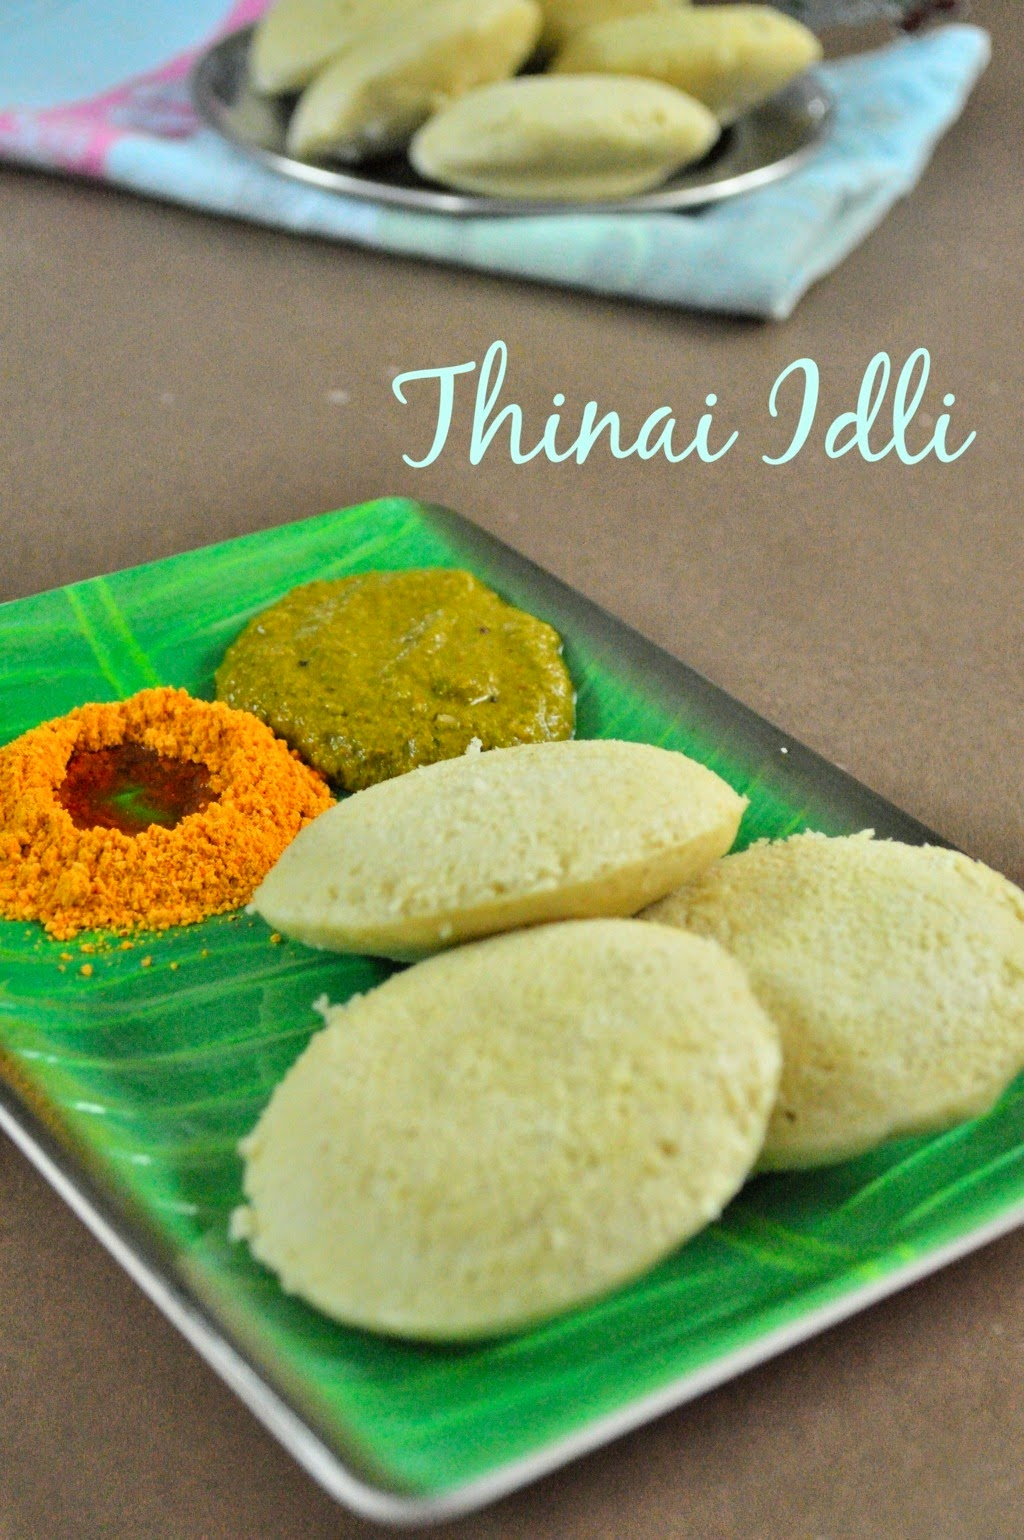 thinai idli recipe, Foxtail Millet Recipes, Breakfast Recipes,